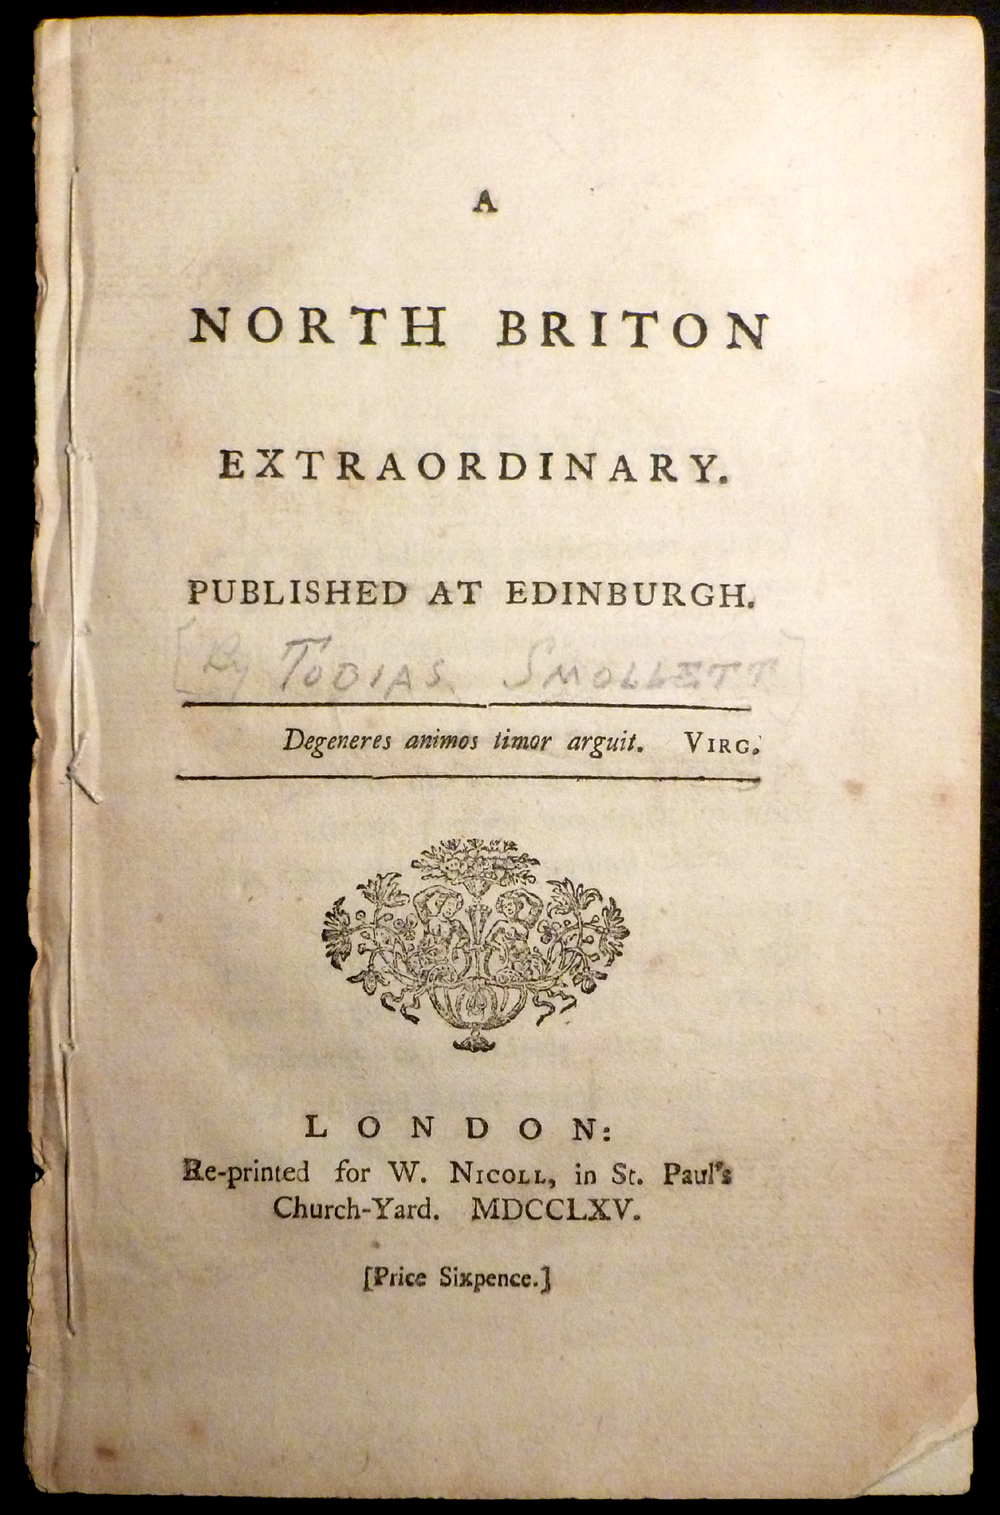 Image for A North Briton Extraordinary / Published at Edinburgh